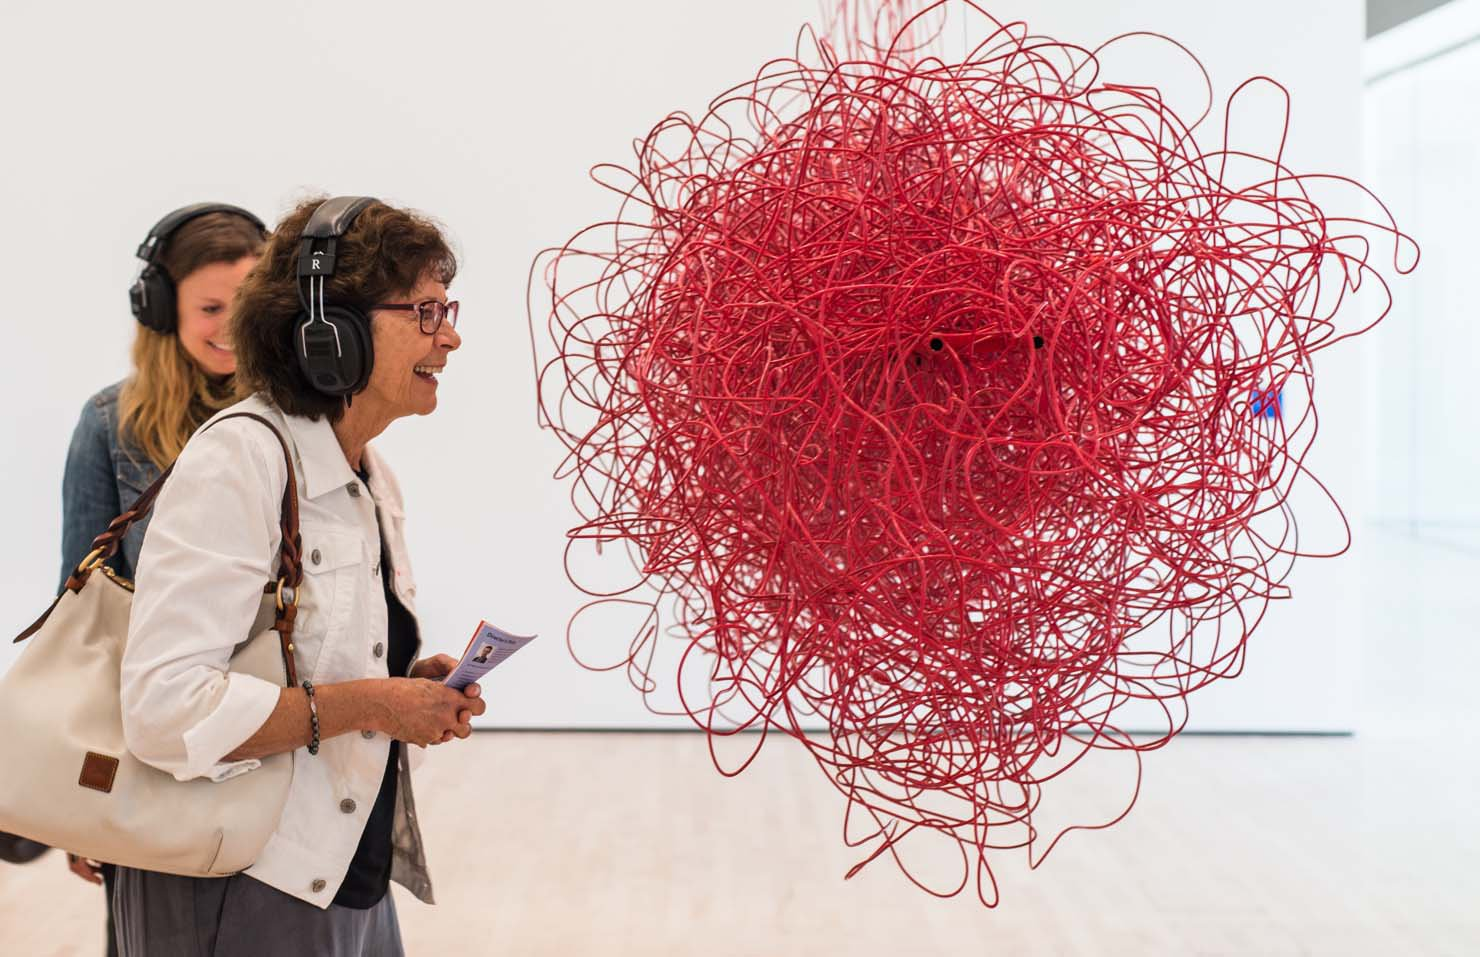 A middle-aged Caucasian woman wearing headphones smiles before a cloud made out of red electrical wires, Kubisch, Soundtracks